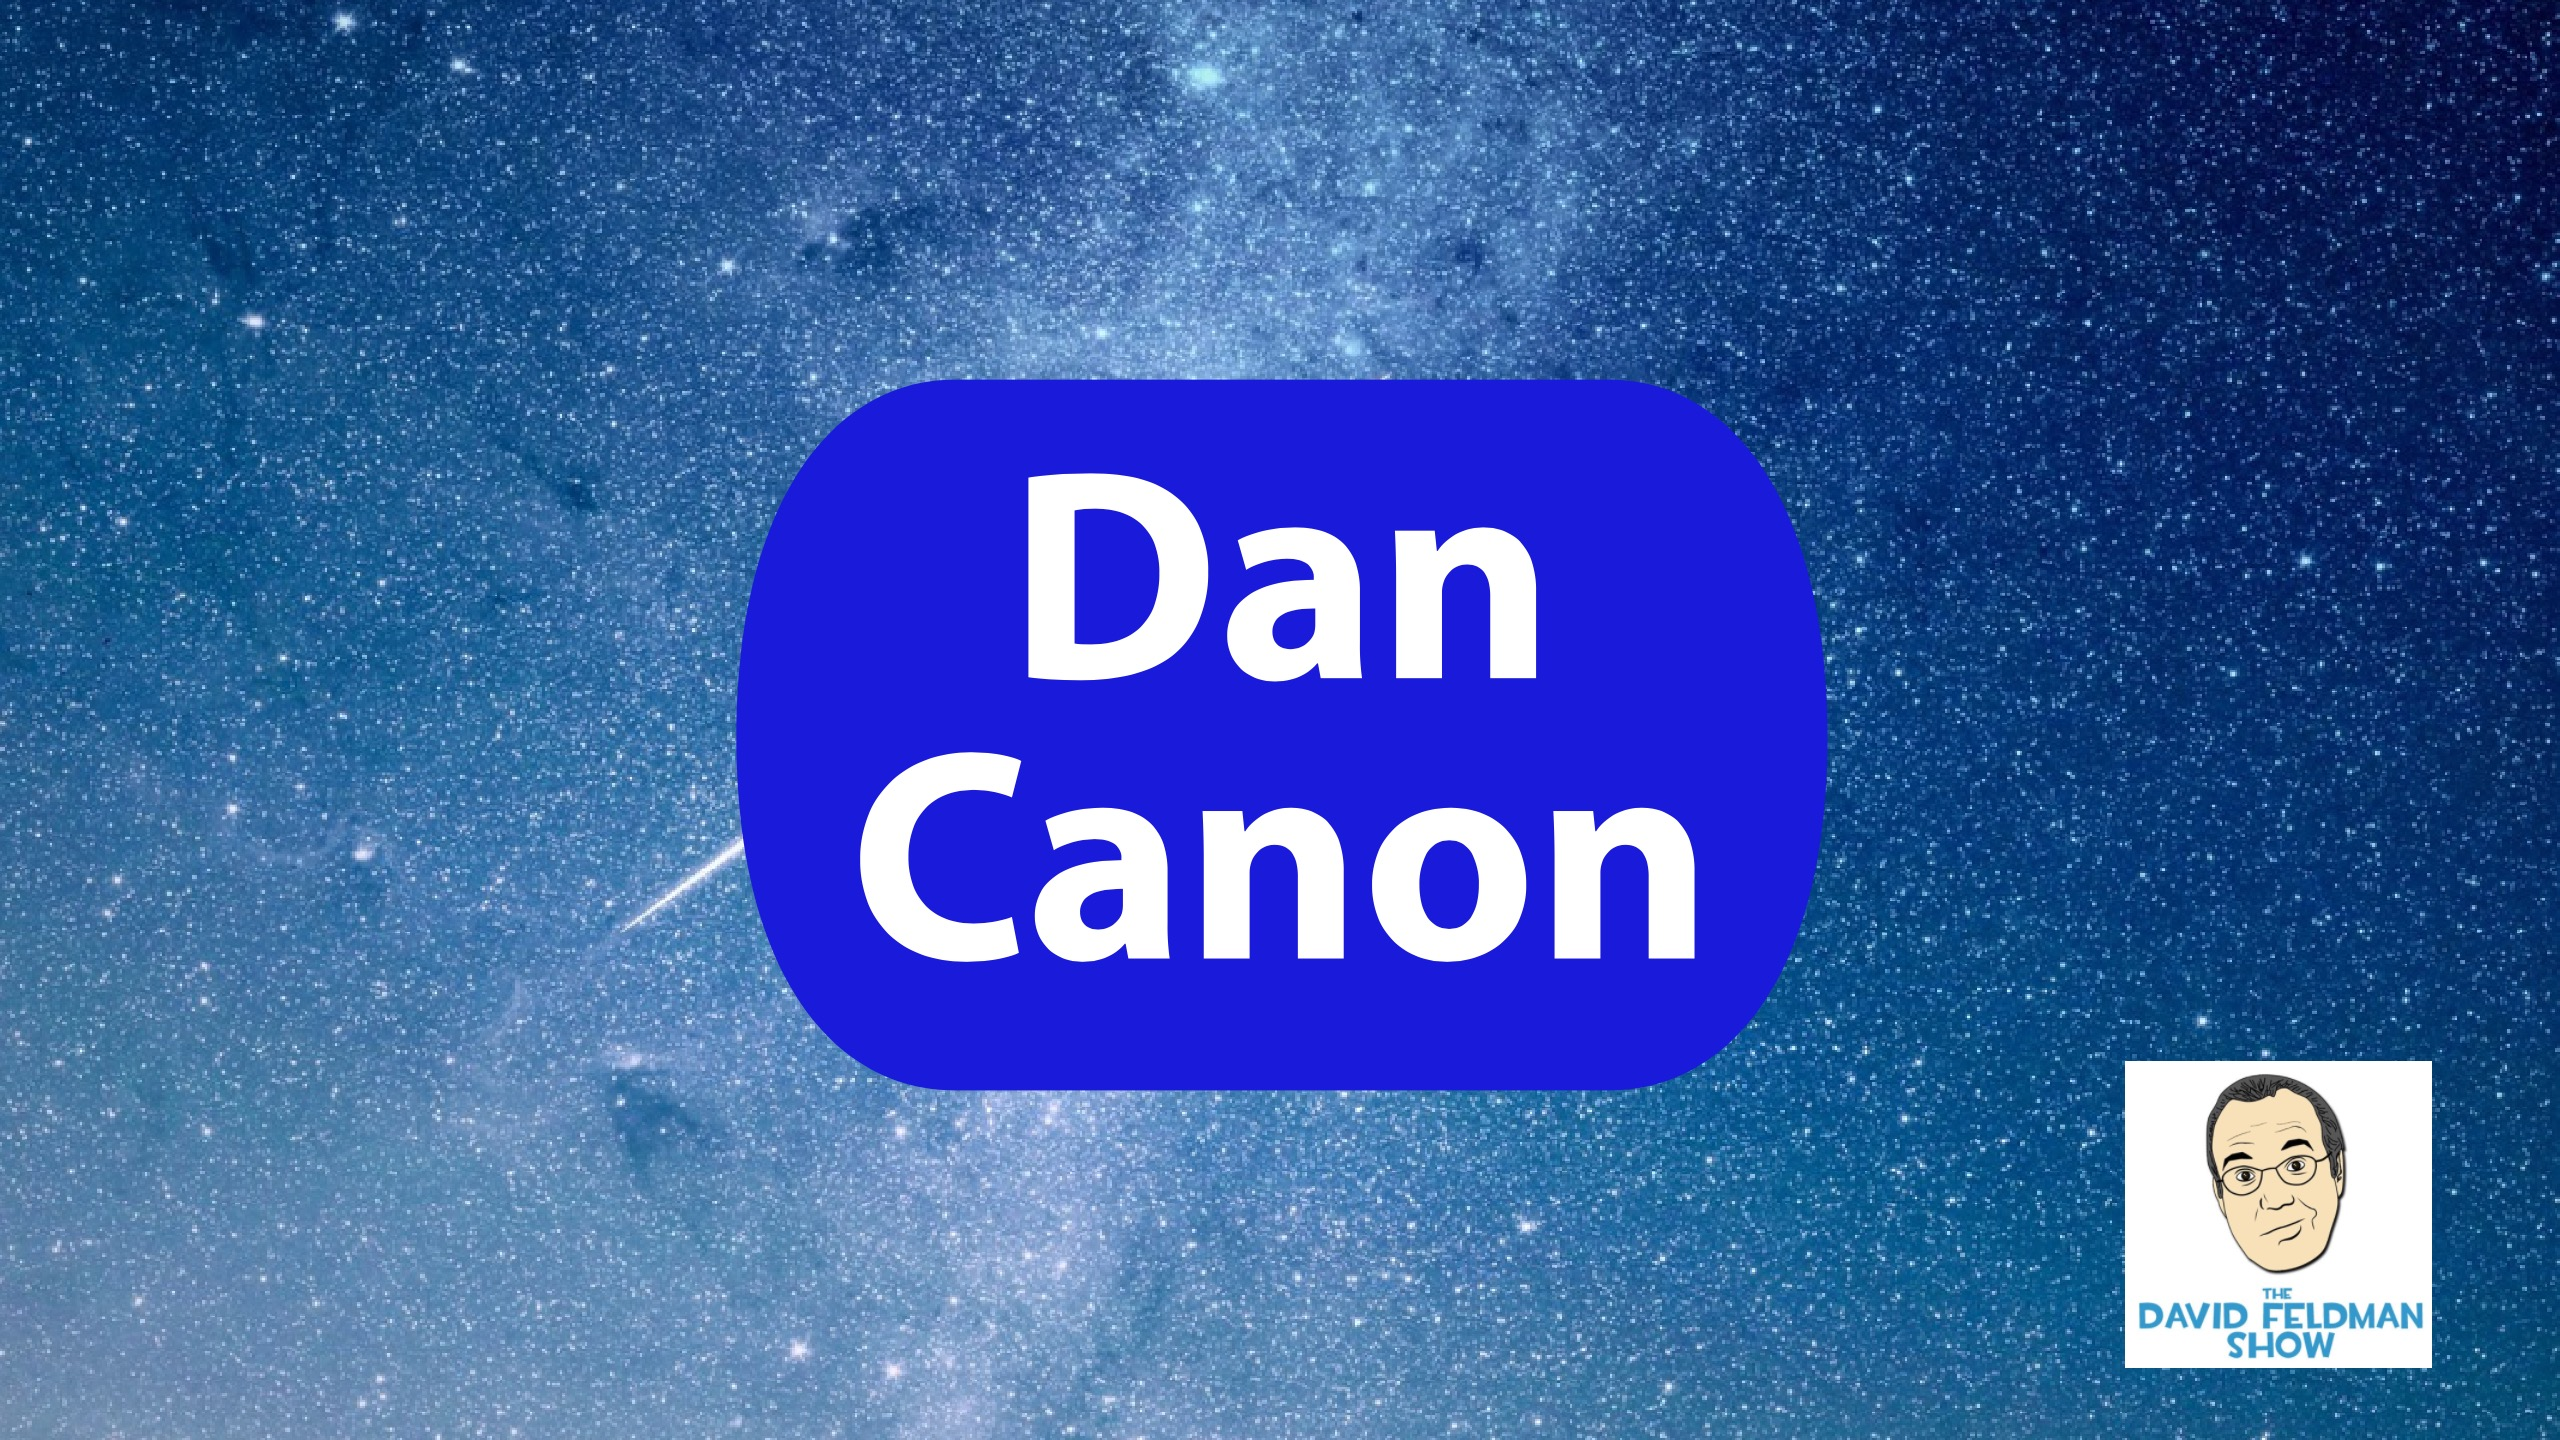 Dan Canon for Congress